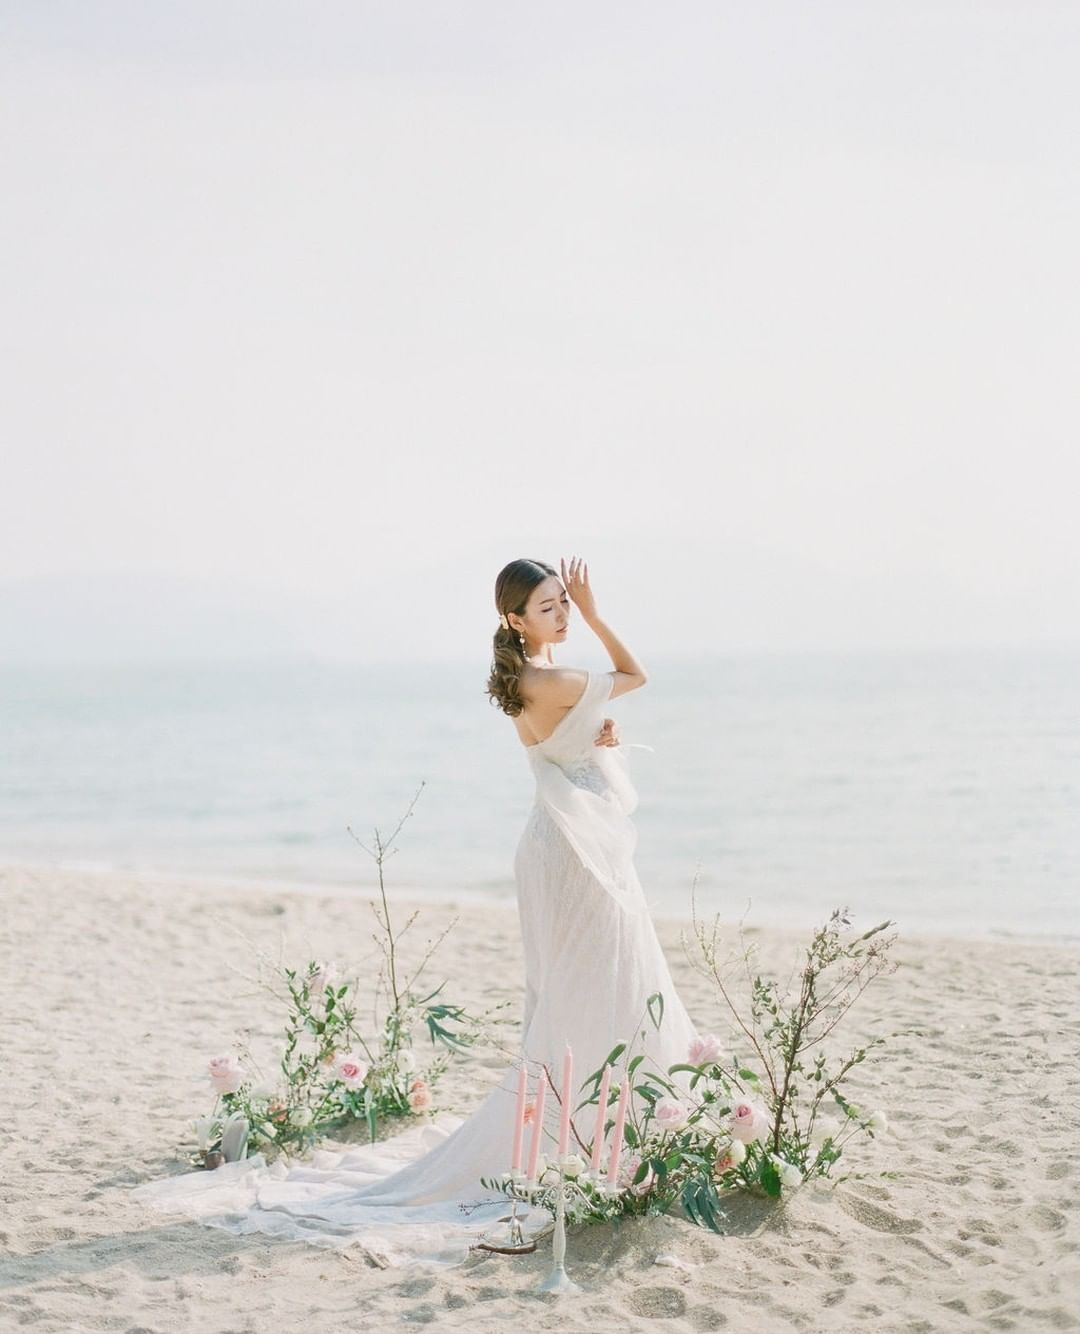 Romantic and simple beach wedding setup. in 2020 Simple